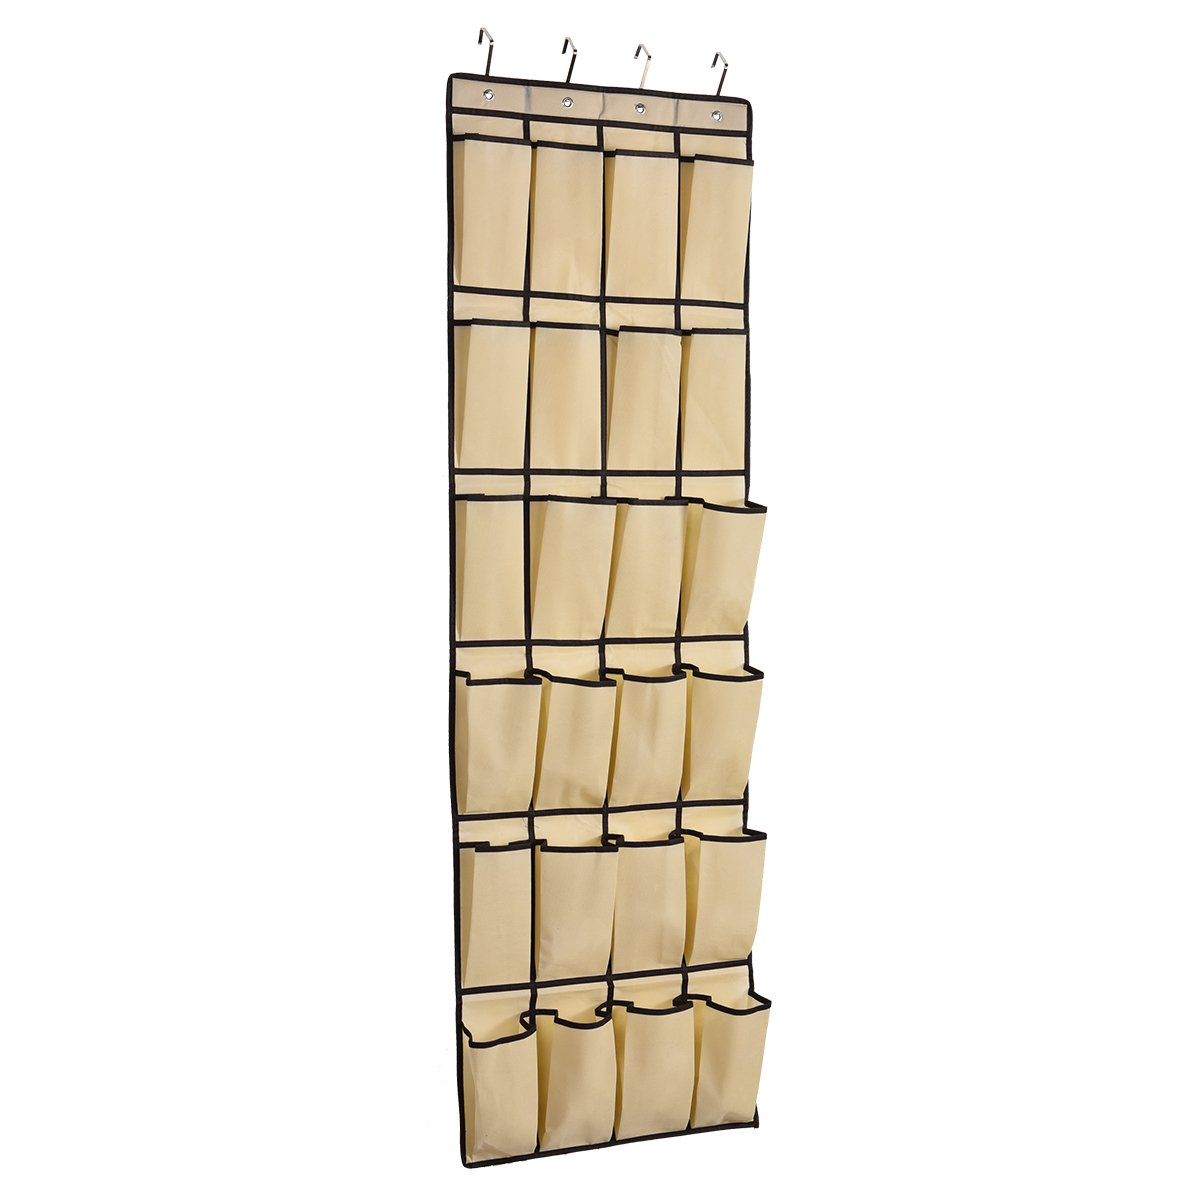 Bean c 24 Large Pocket Over Door Shoe Organizer Hanging Shoe Storage Non-Woven Closet Organizer With 4 Steel Hooks,Beige beanbean